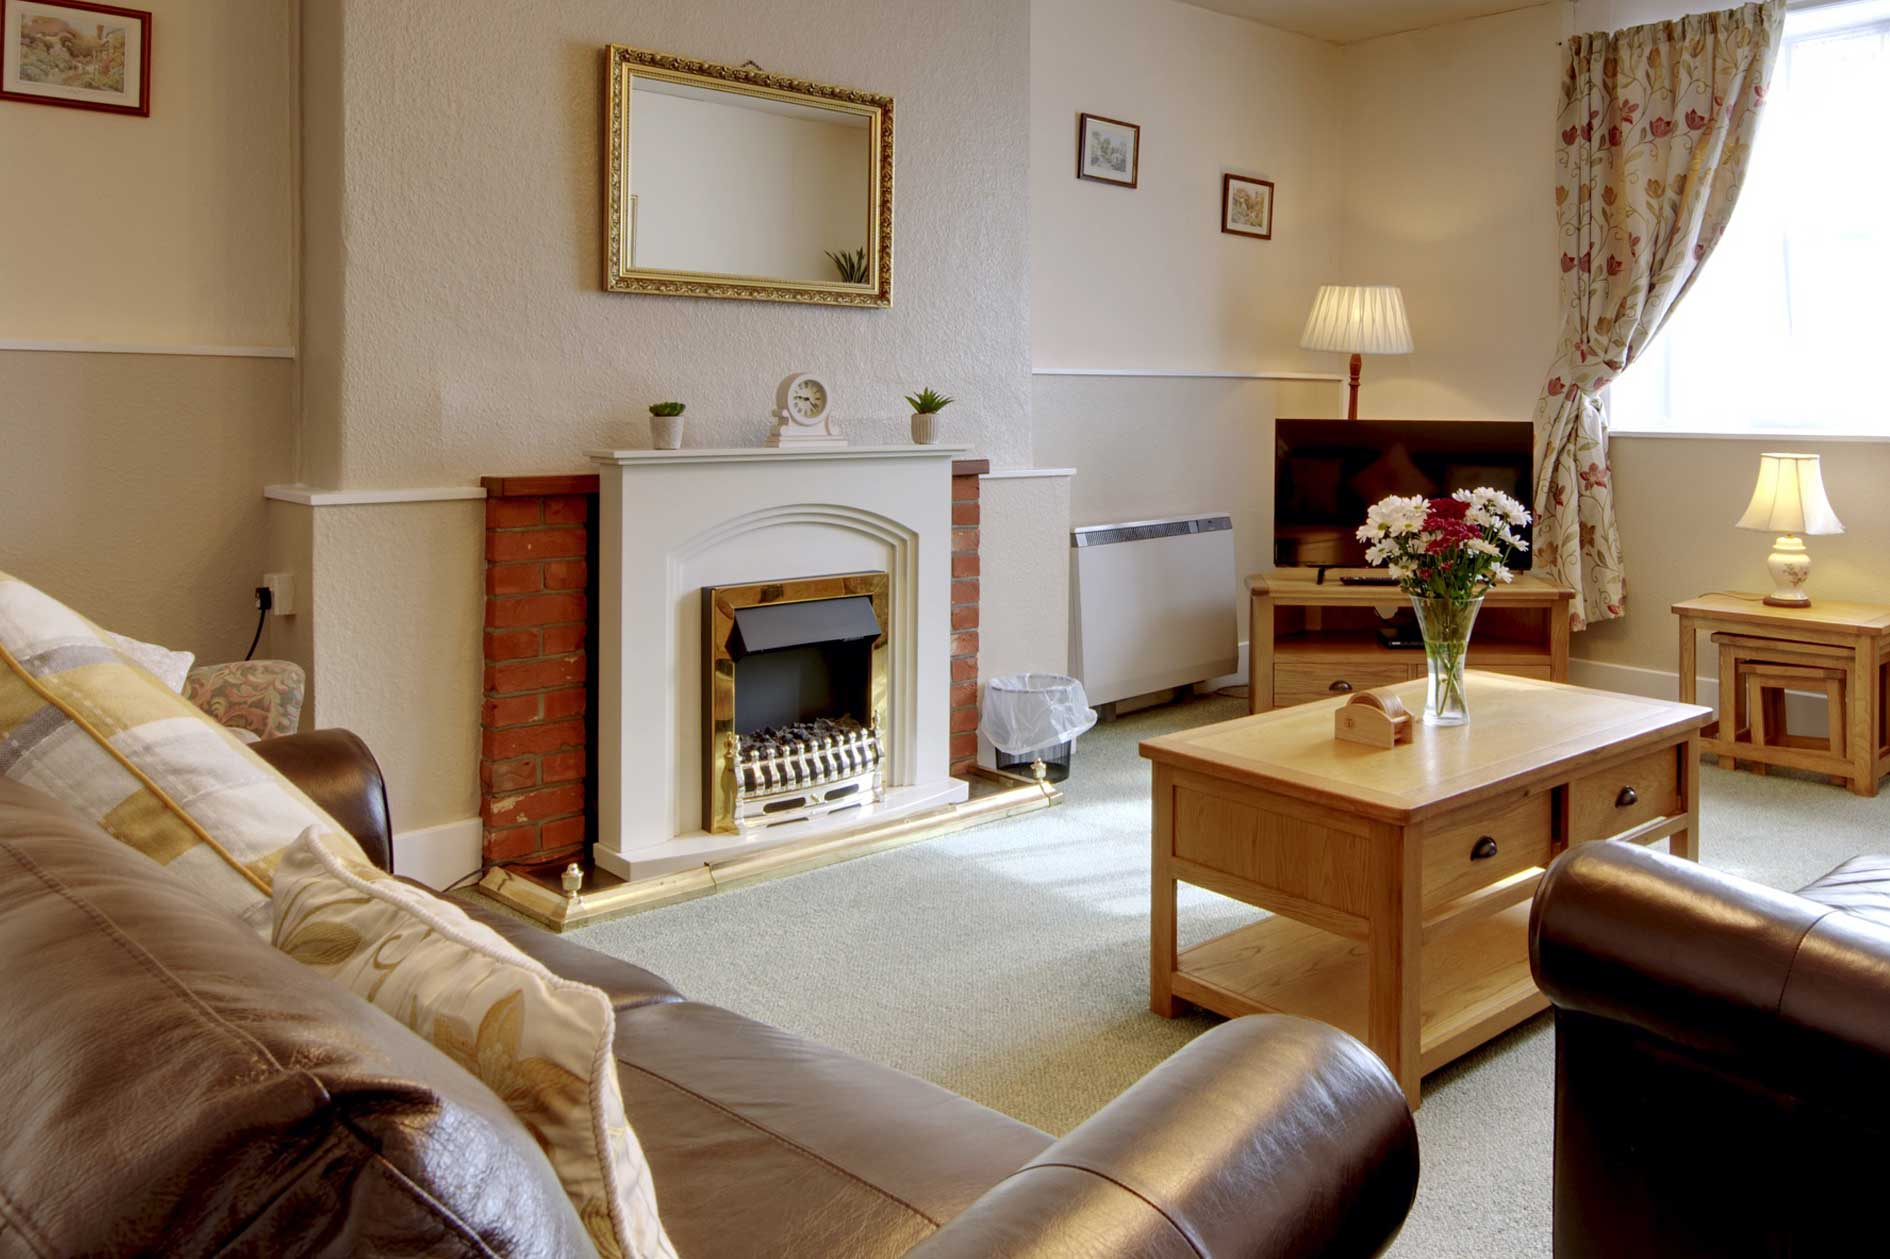 Living Room With Brown Leather Sofas, Wooden Furniture And Fire Mantle